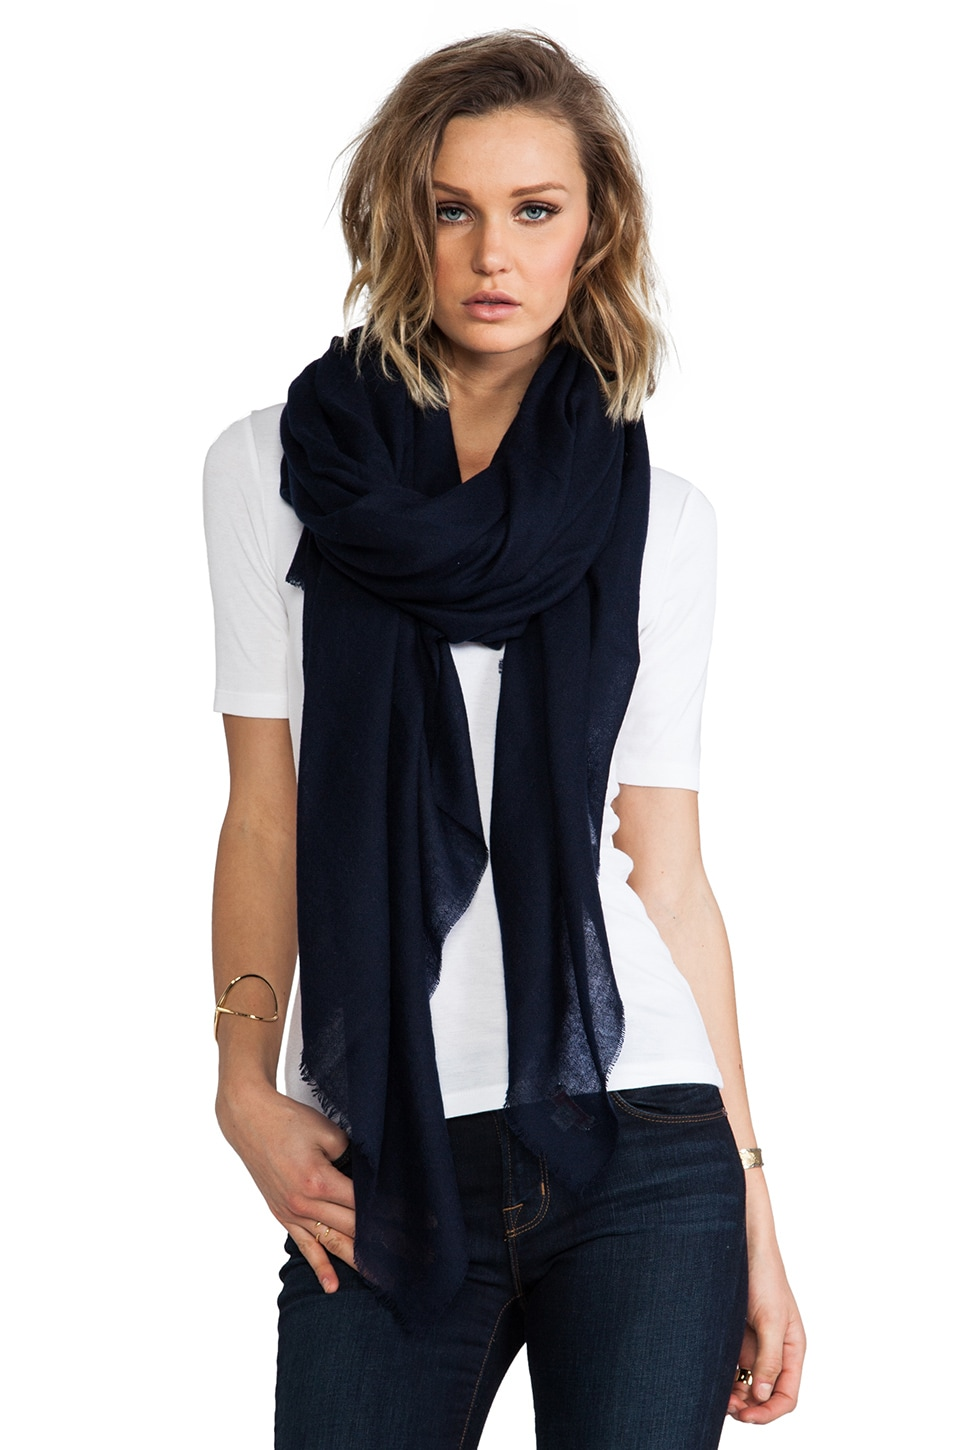 DemyLee Cashmere Woven Scarf in Navy